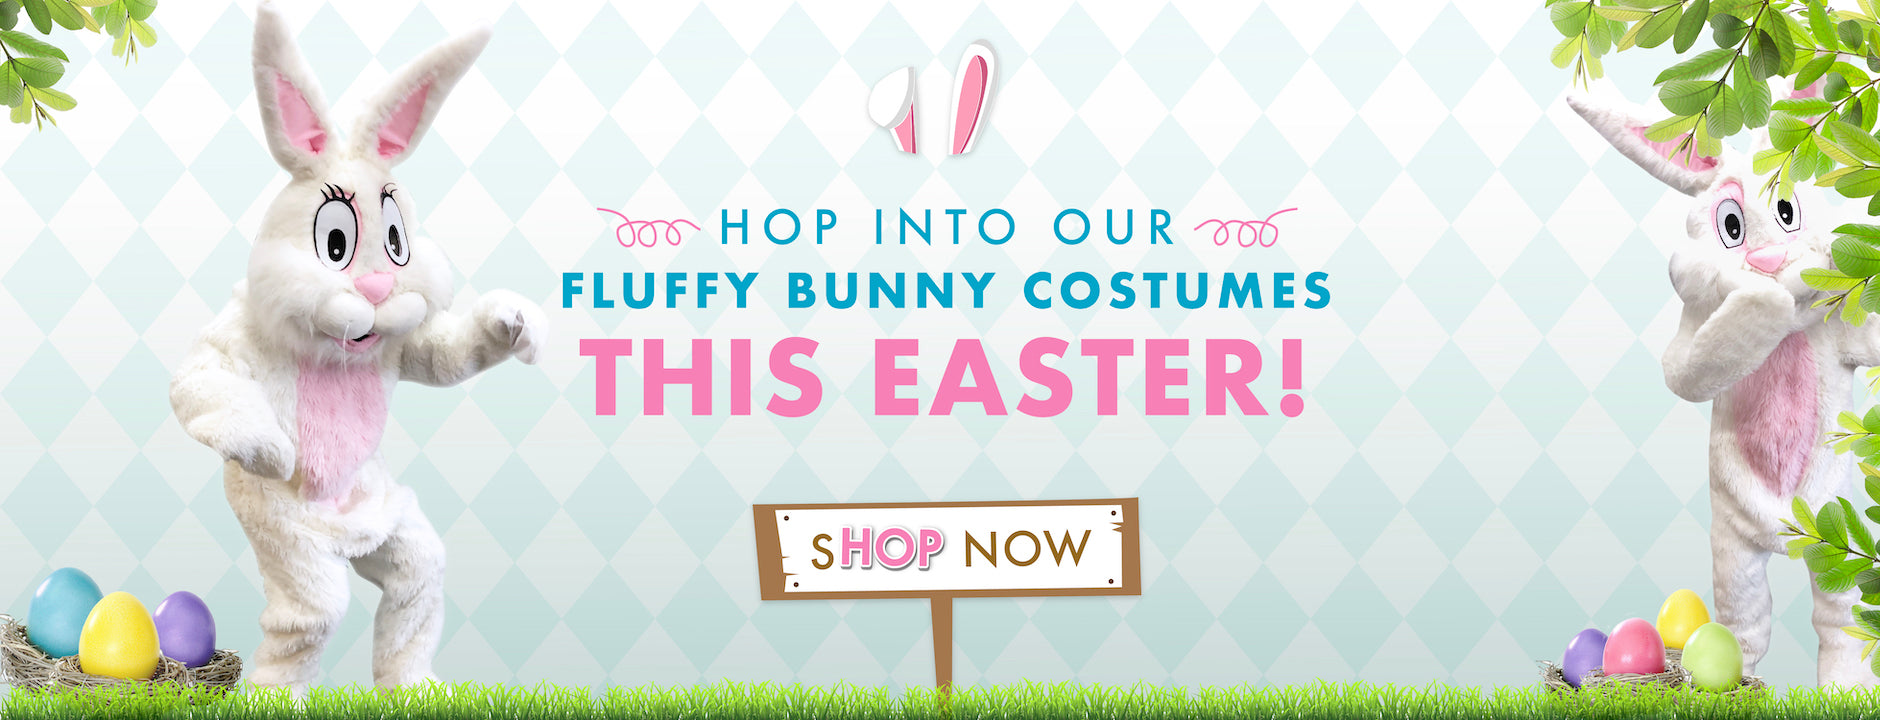 Easter Bunny Costumes to buy and hire